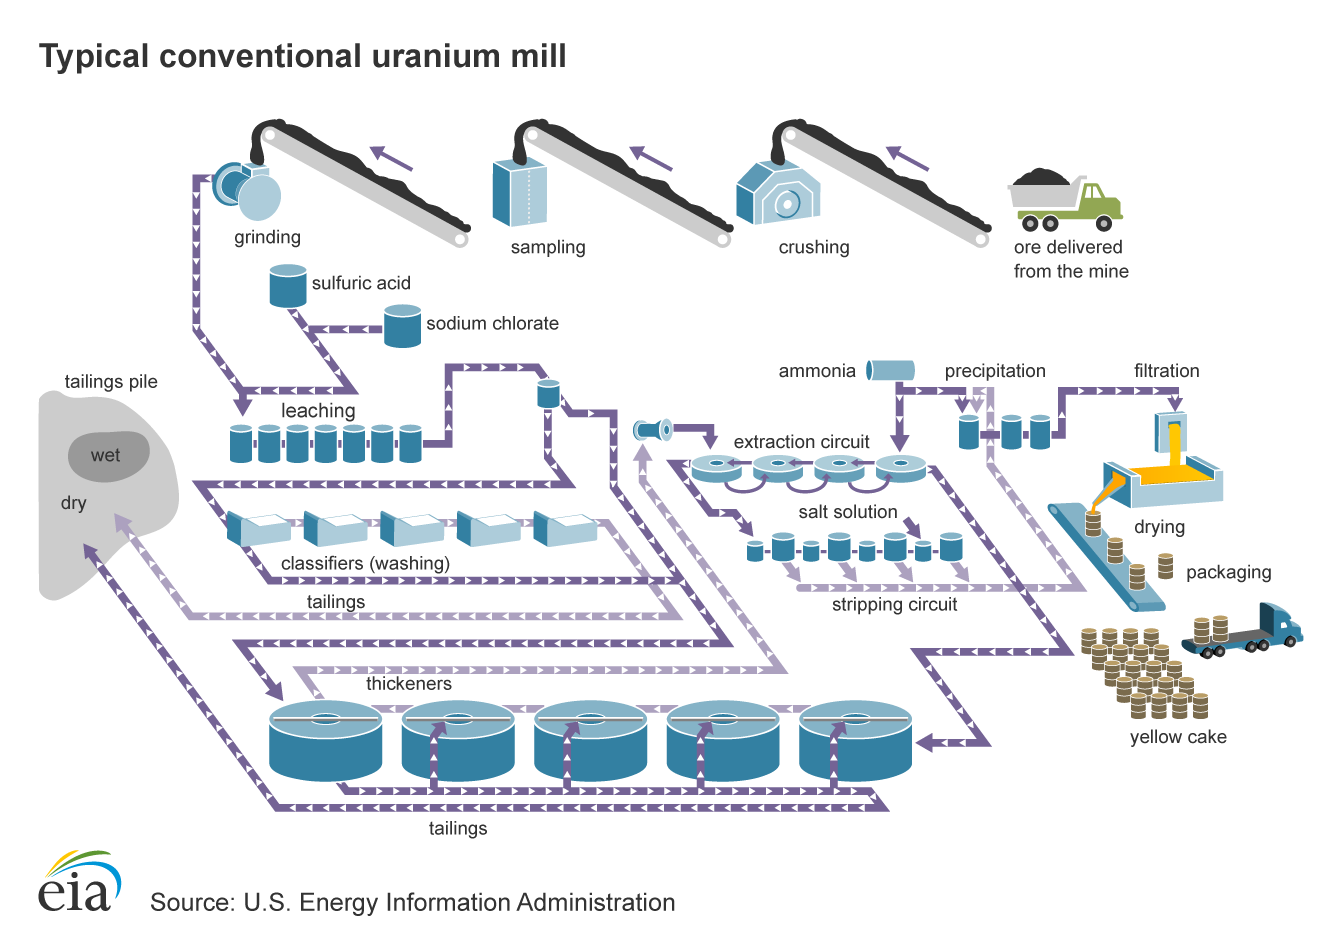 Diagram of a Typical Conventional Uranium Mill